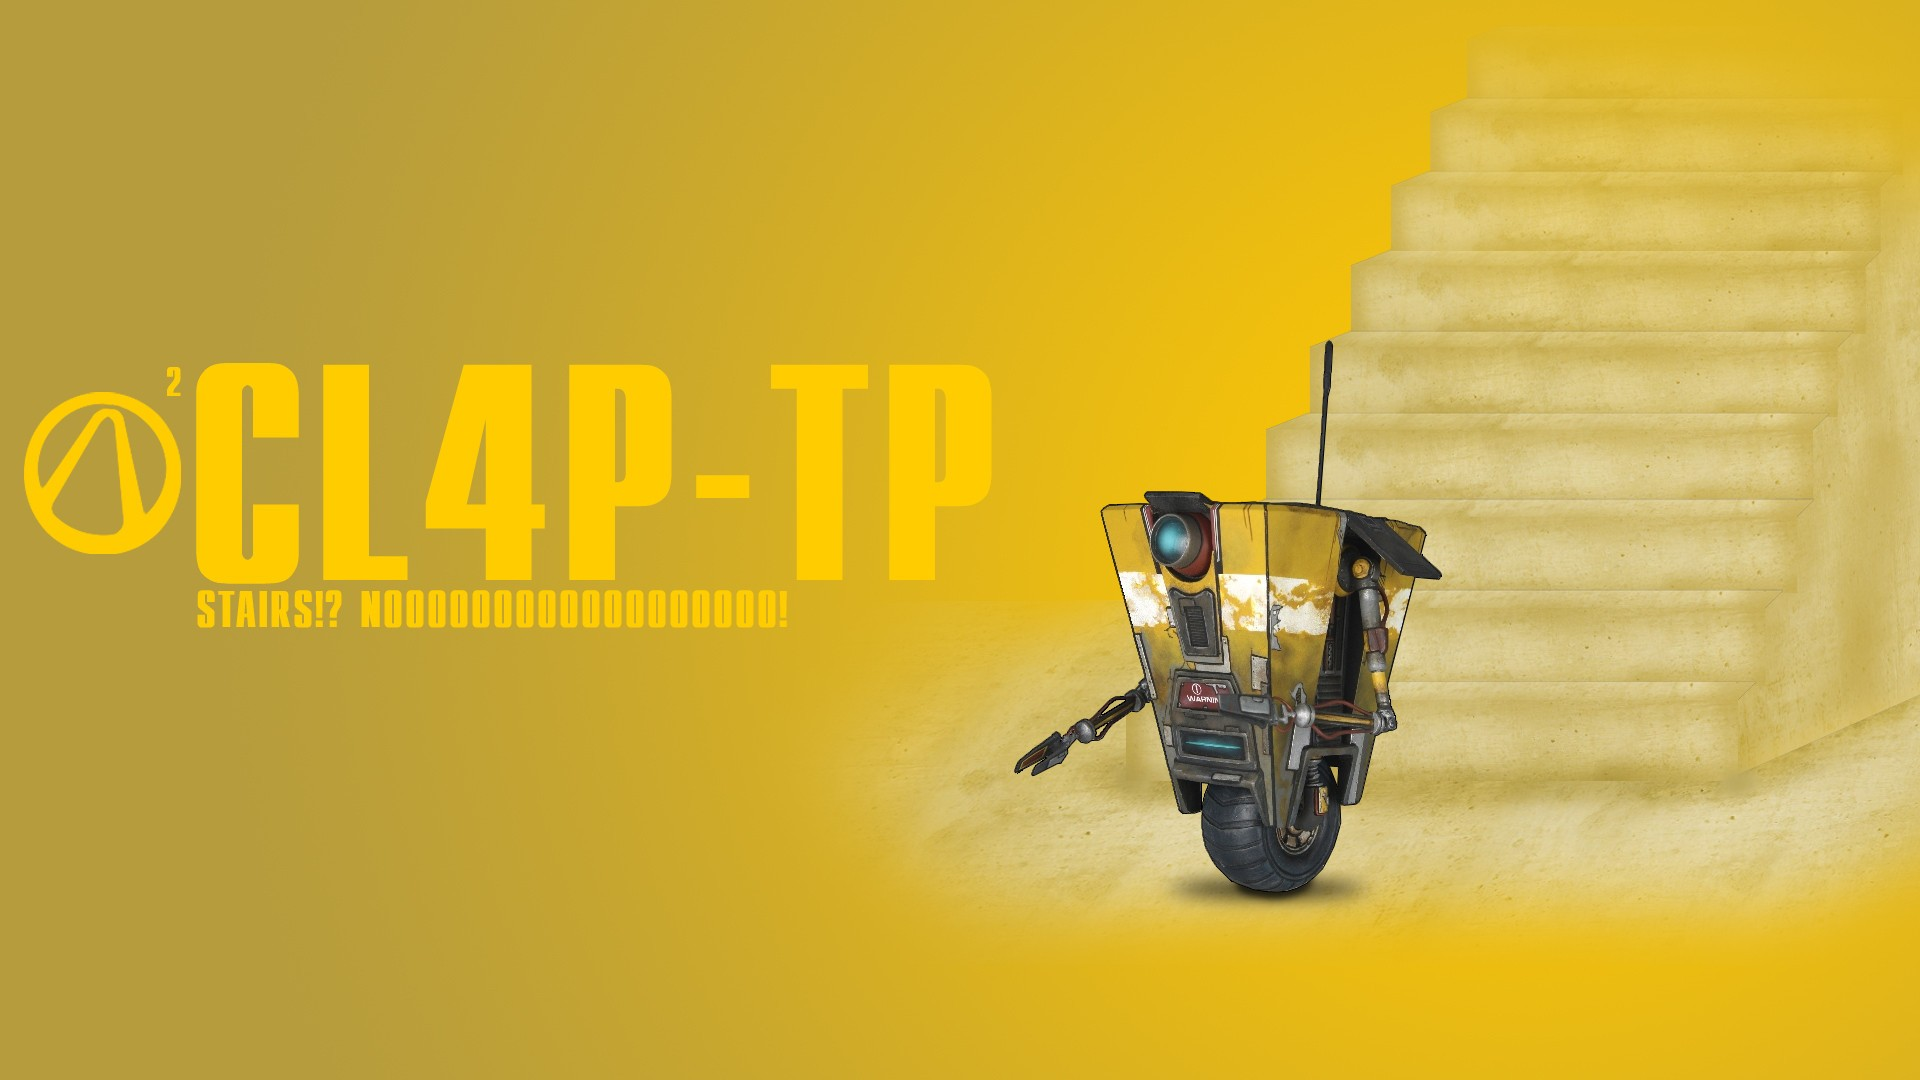 Video games Borderlands claptrap wallpaper 1920x1080 1920x1080